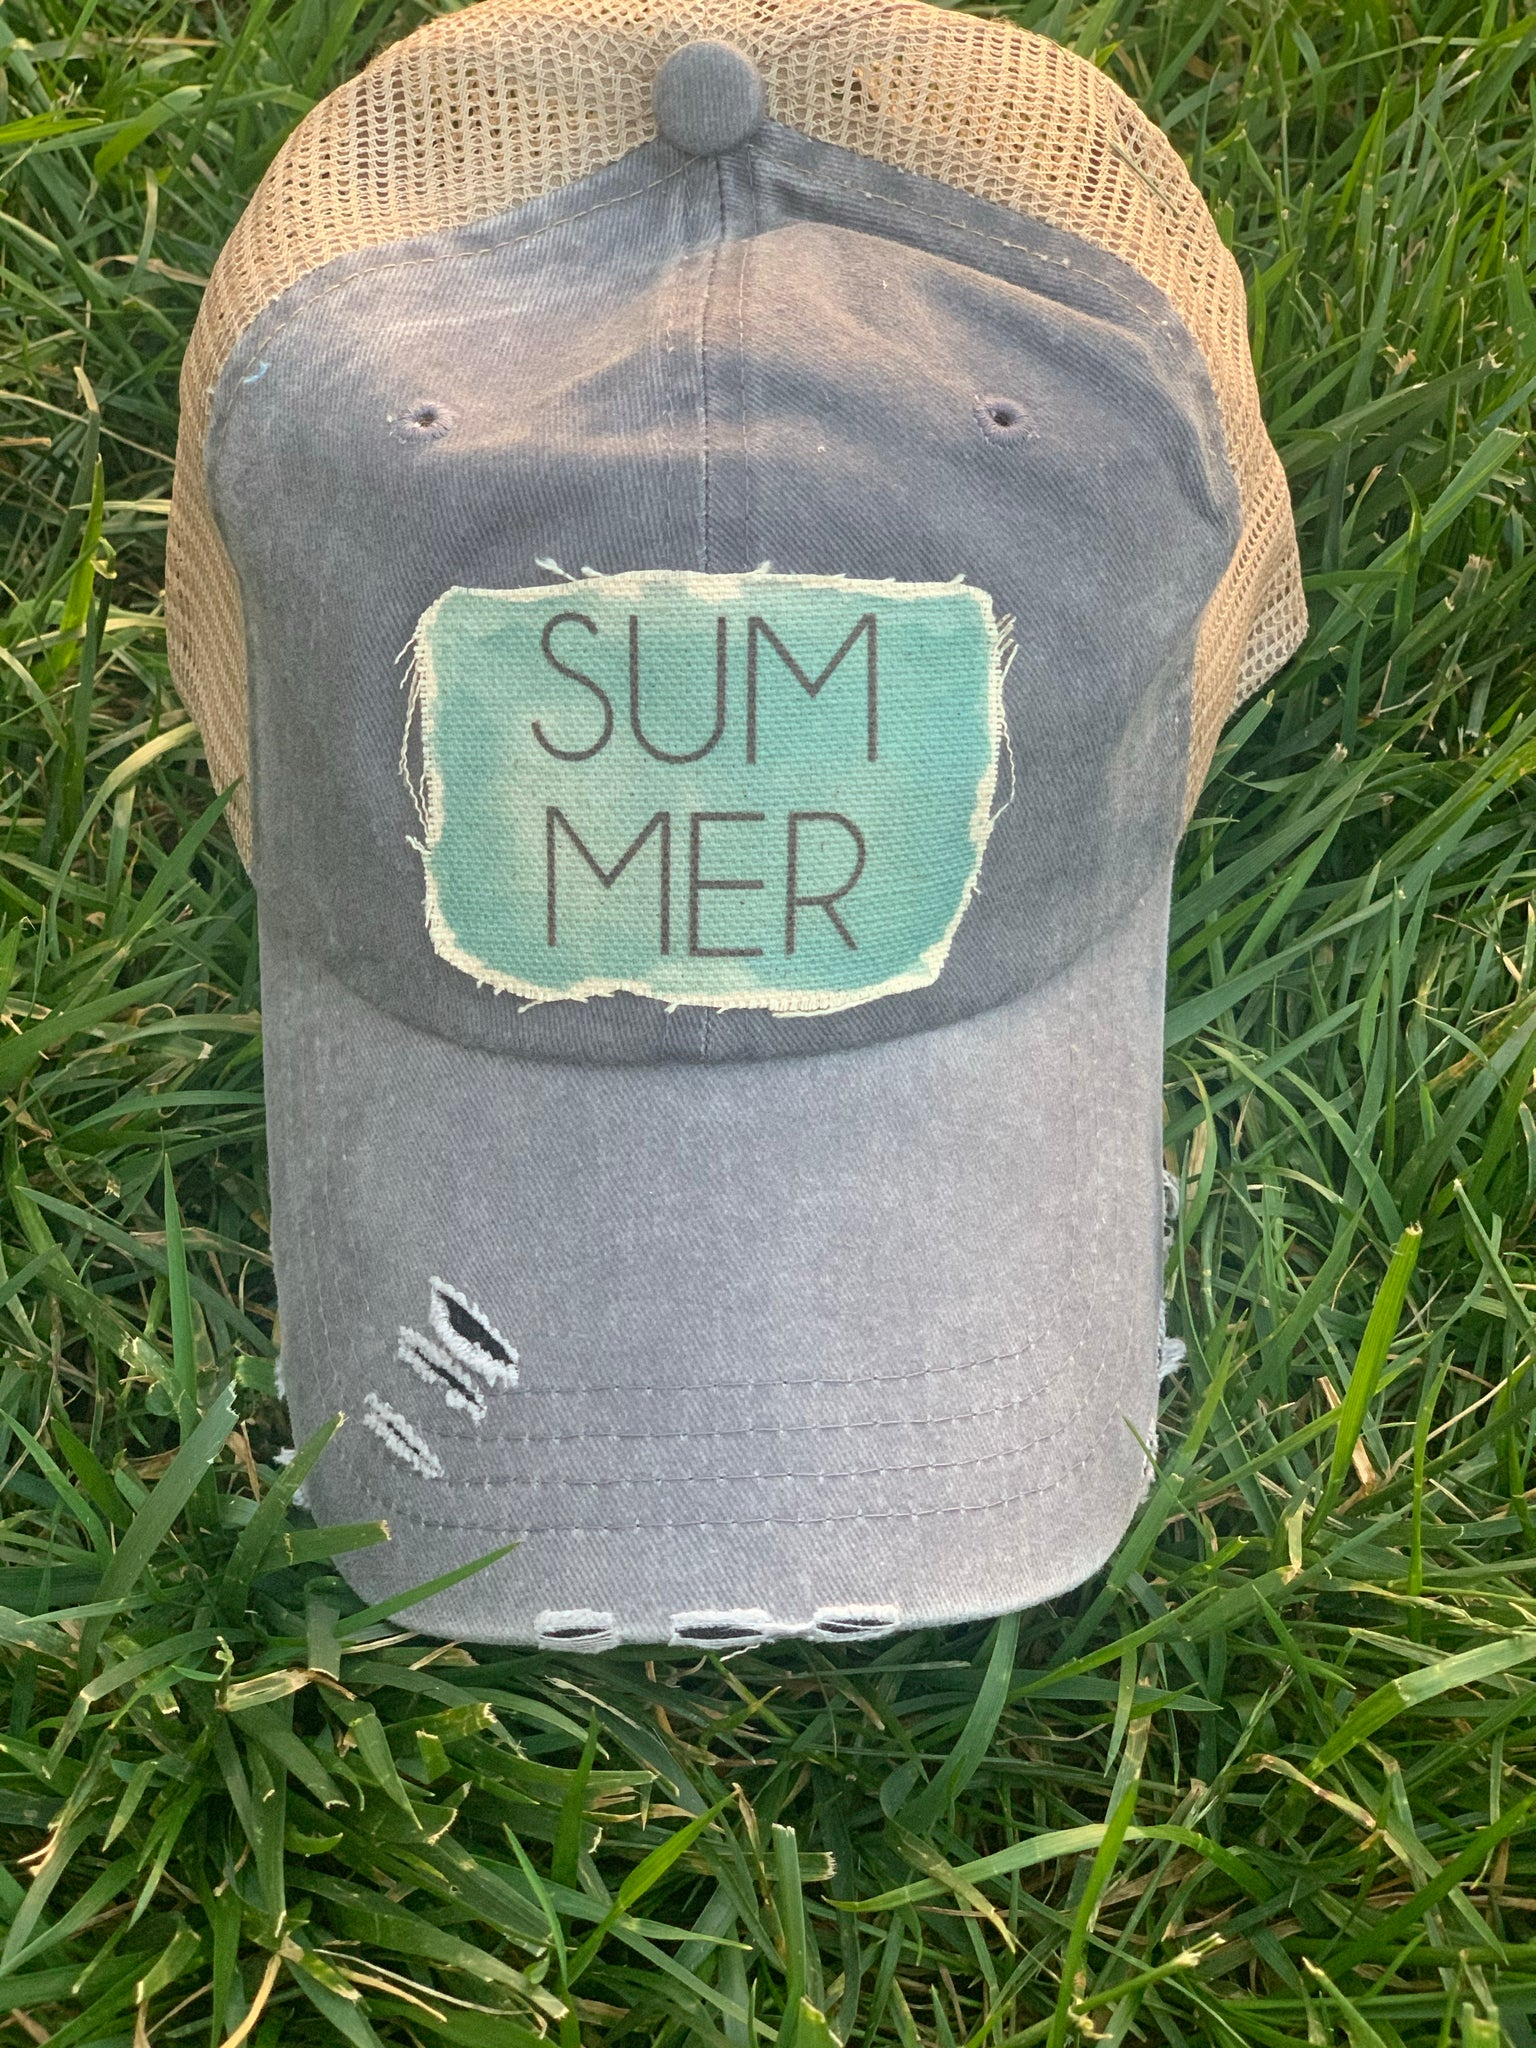 SUMMER - Trucker Hat - Summer Raggy Hat-Vibtage Gray and Teal